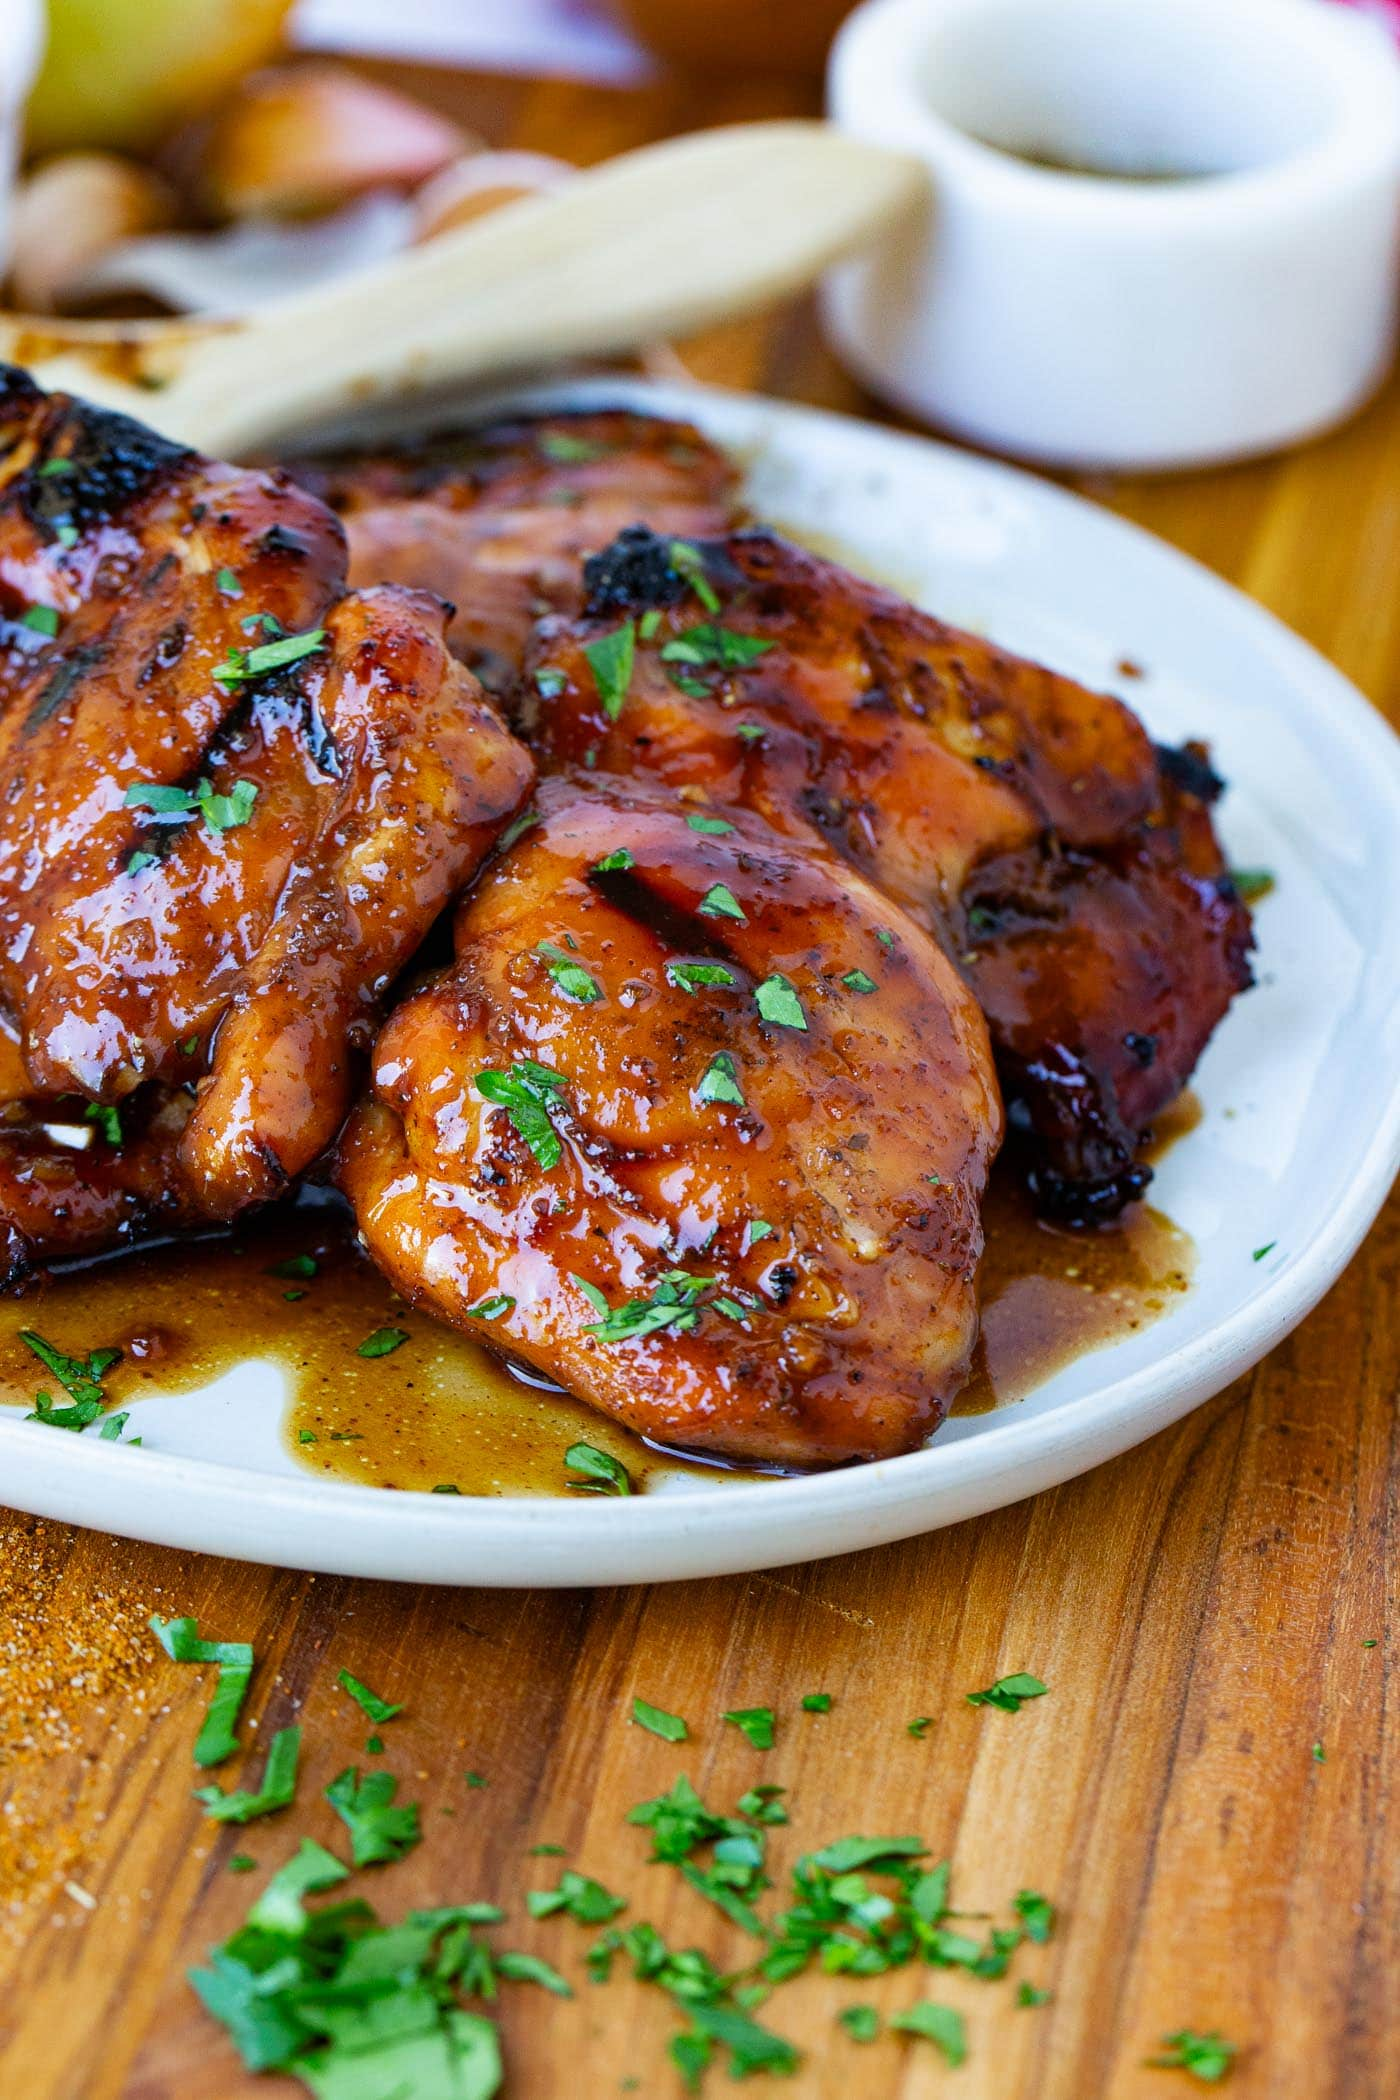 A serving plate of marinated smoked chicken thighs sprinkled with fresh green herbs.